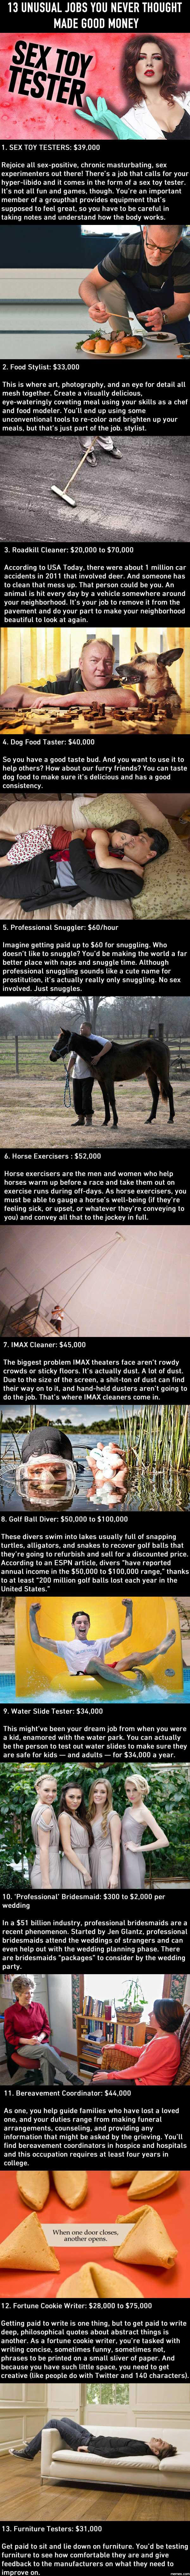 unusual jobs you never thought made good money com 13 unusual jobs you never thought made good money